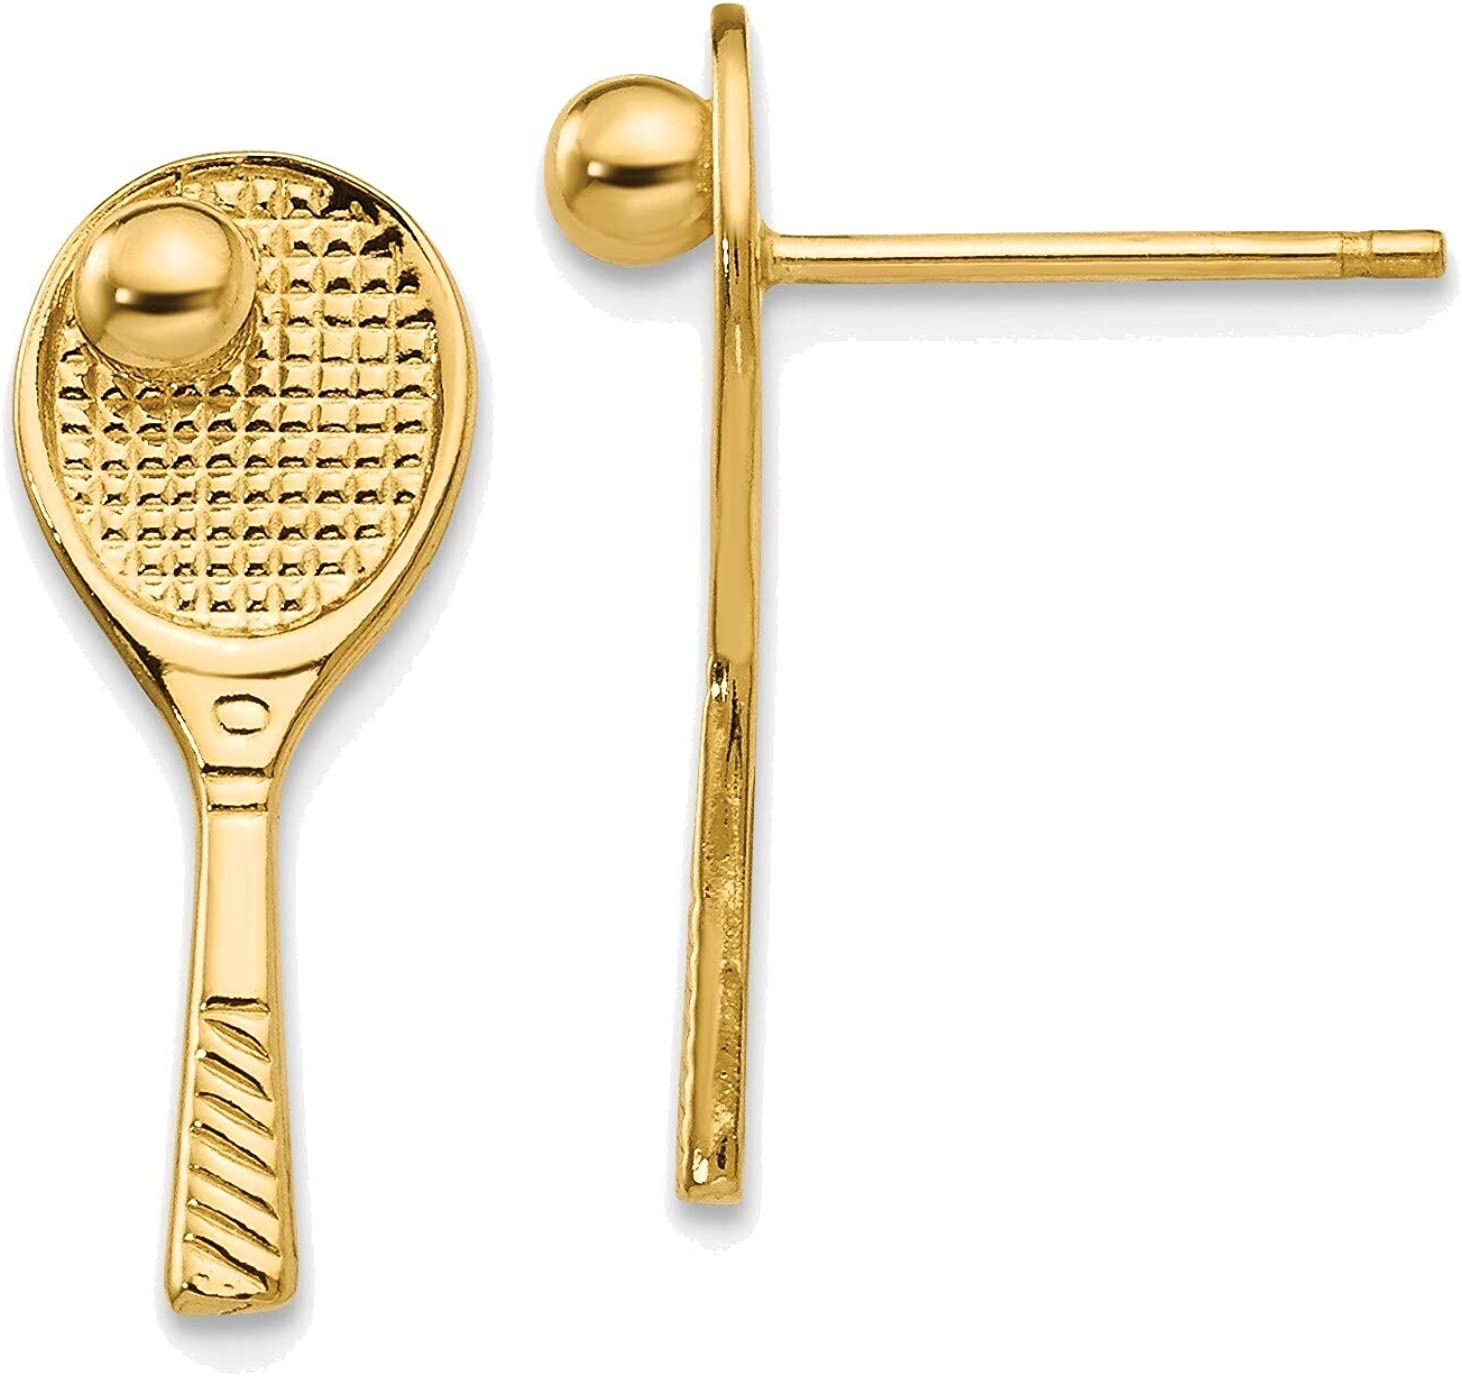 Tennis Racquet with Ball Post Earrings in 14K Yellow Gold